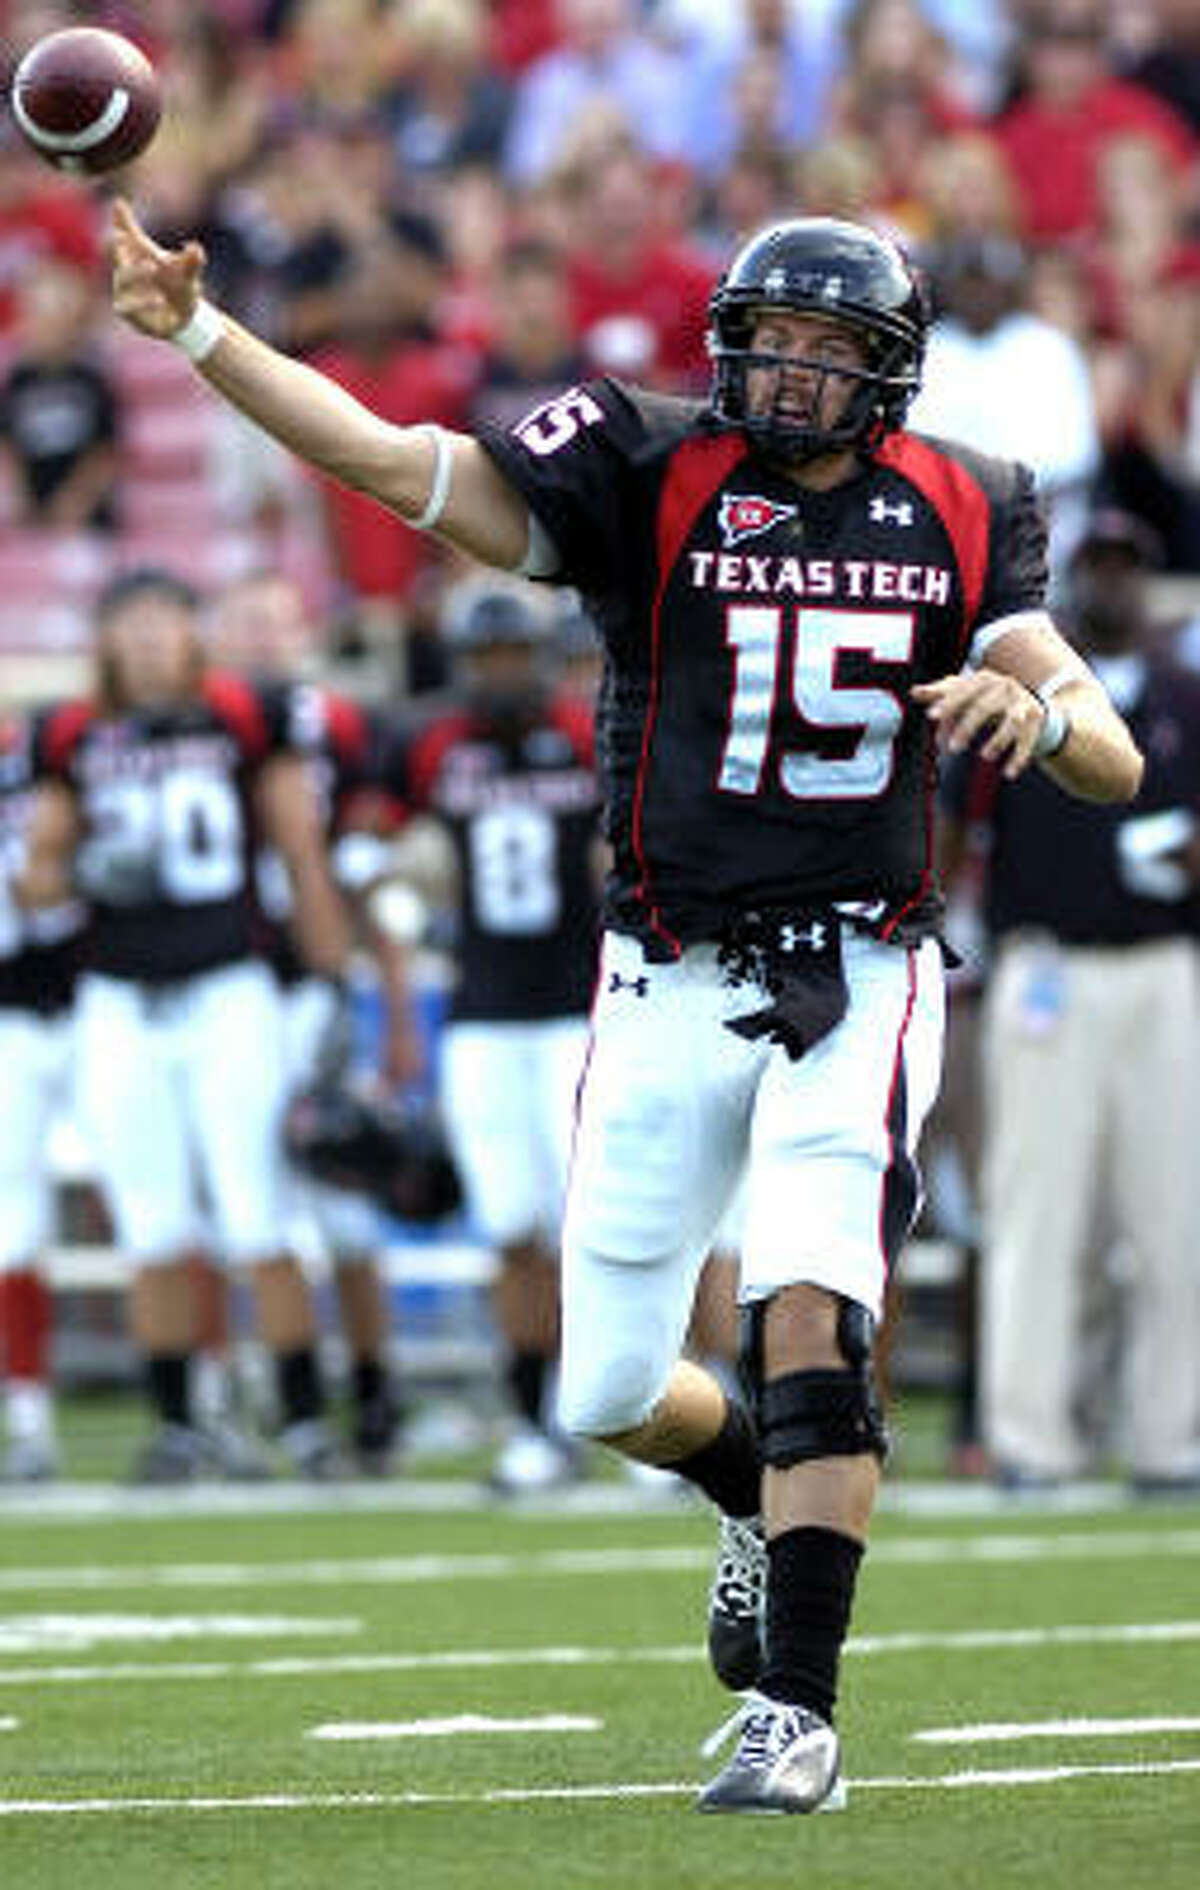 Texas Tech's Taylor Potts throws a pass against North Dakota. Potts threw for 420 yards and two touchdowns to go along with three interceptions.